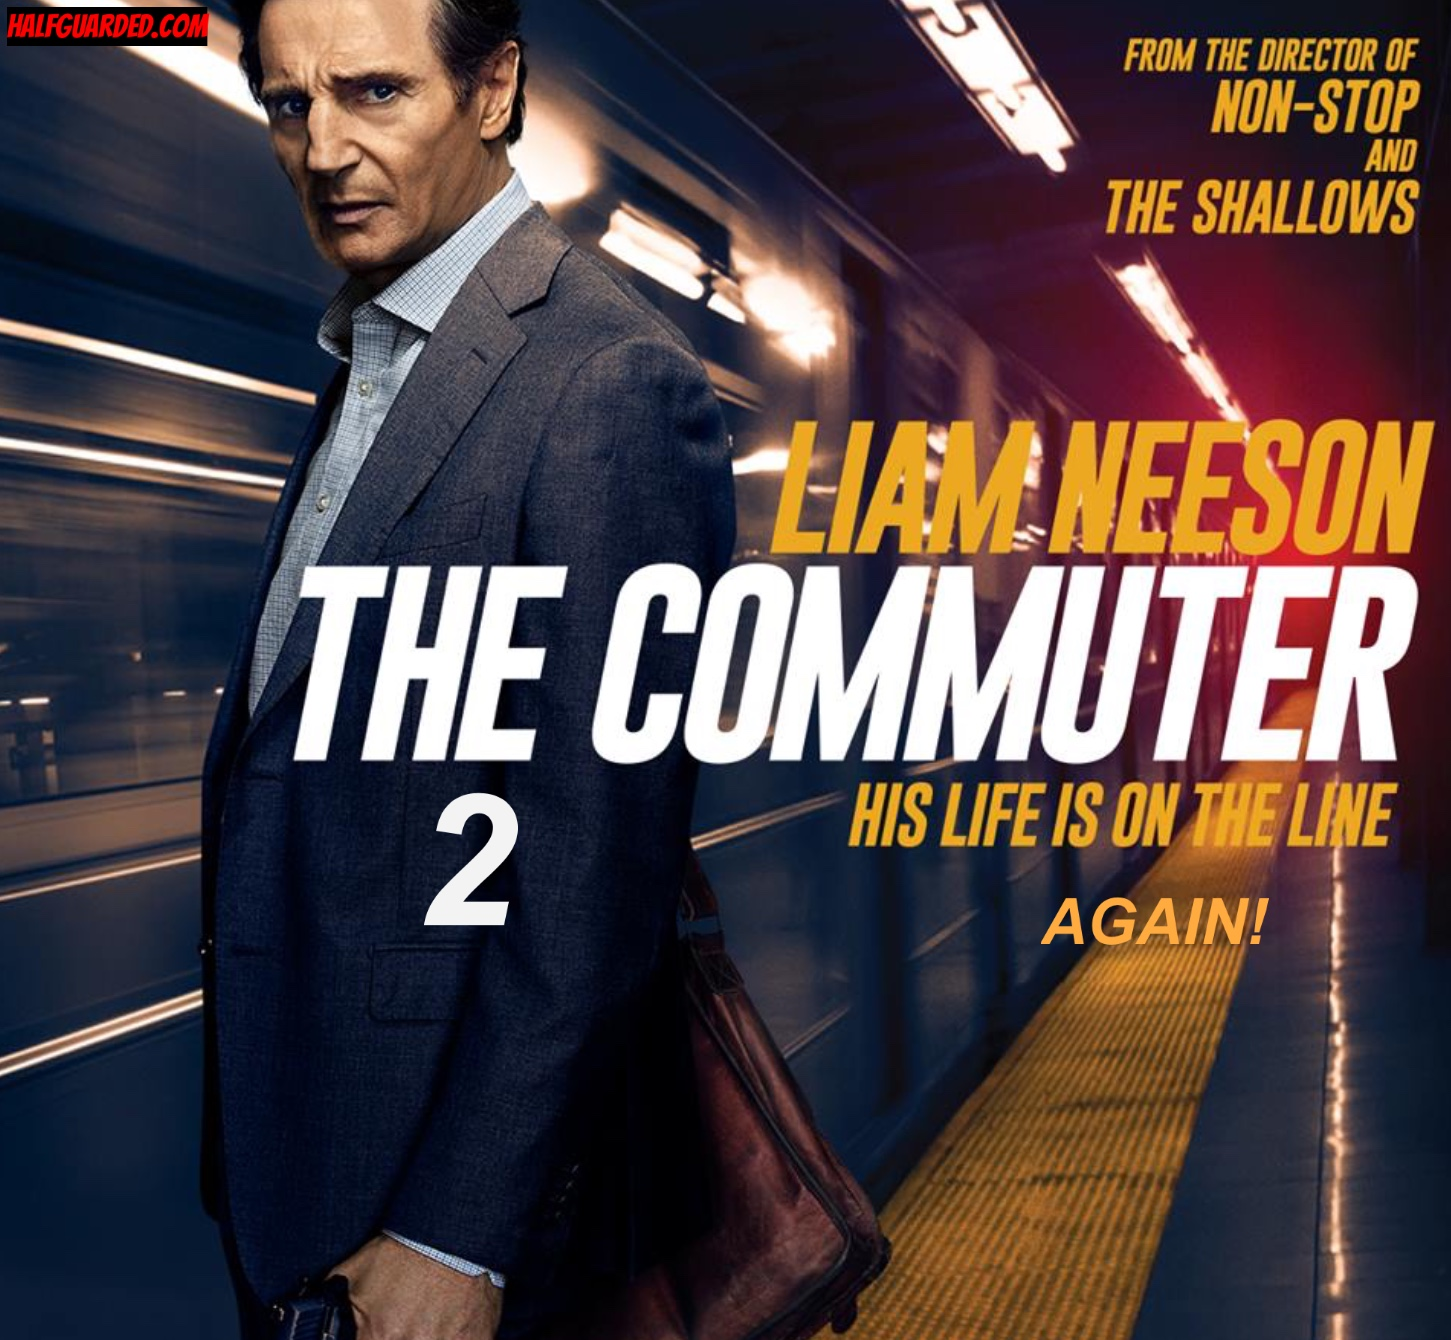 The Commuter 2 (2021) RUMORS, Plot, Cast, and Release Date News - WILL THERE BE a The Commuter 2?!